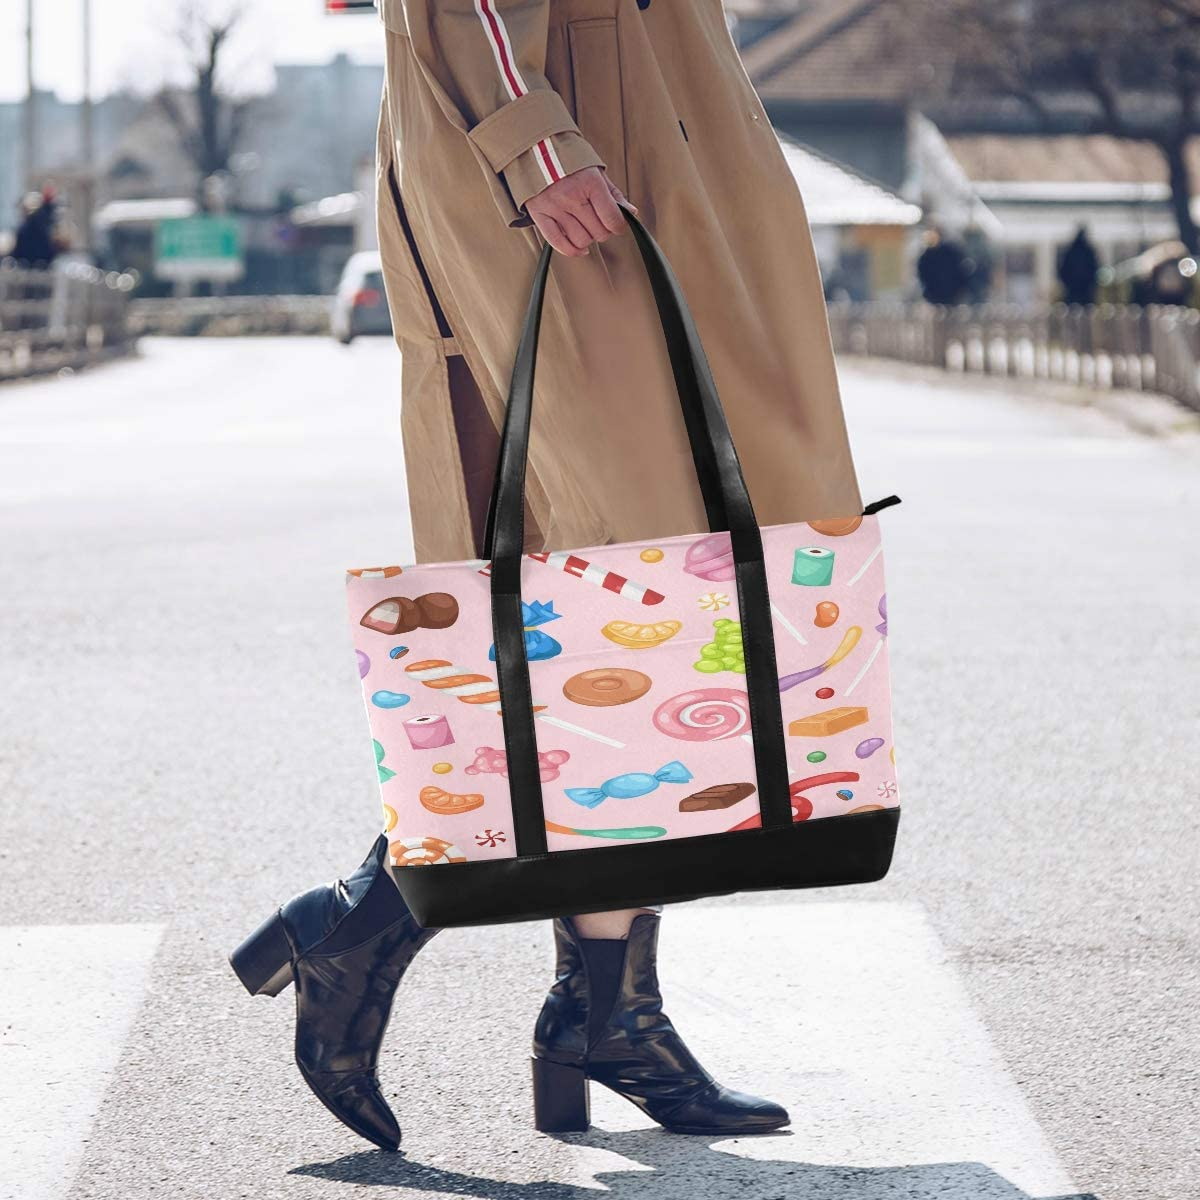 Cartoon Sweet Candy Snack Canvas Shoulder Tote Bag Fit 15.6 Inch Computer Ladies Briefcase for Work School Shopping Outdoor Activities Large Woman Laptop Tote Bag